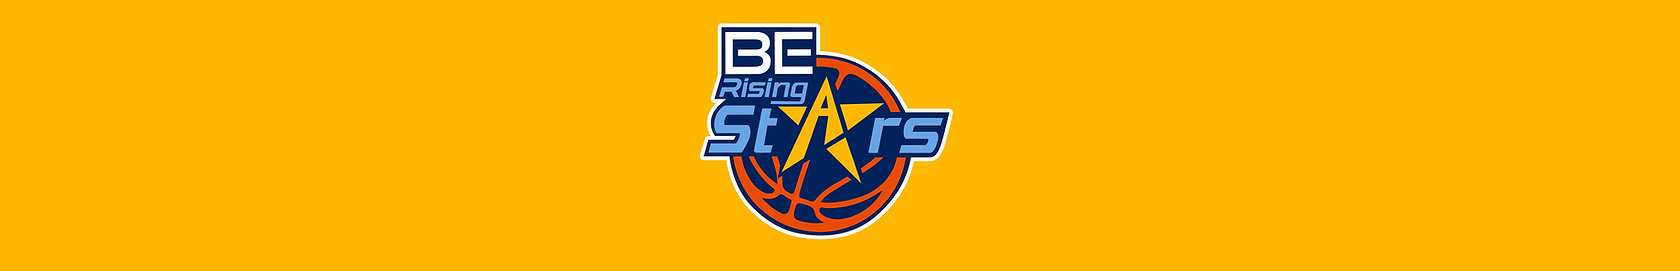 BE BASIC BANNER RISING STAR 1.jpg